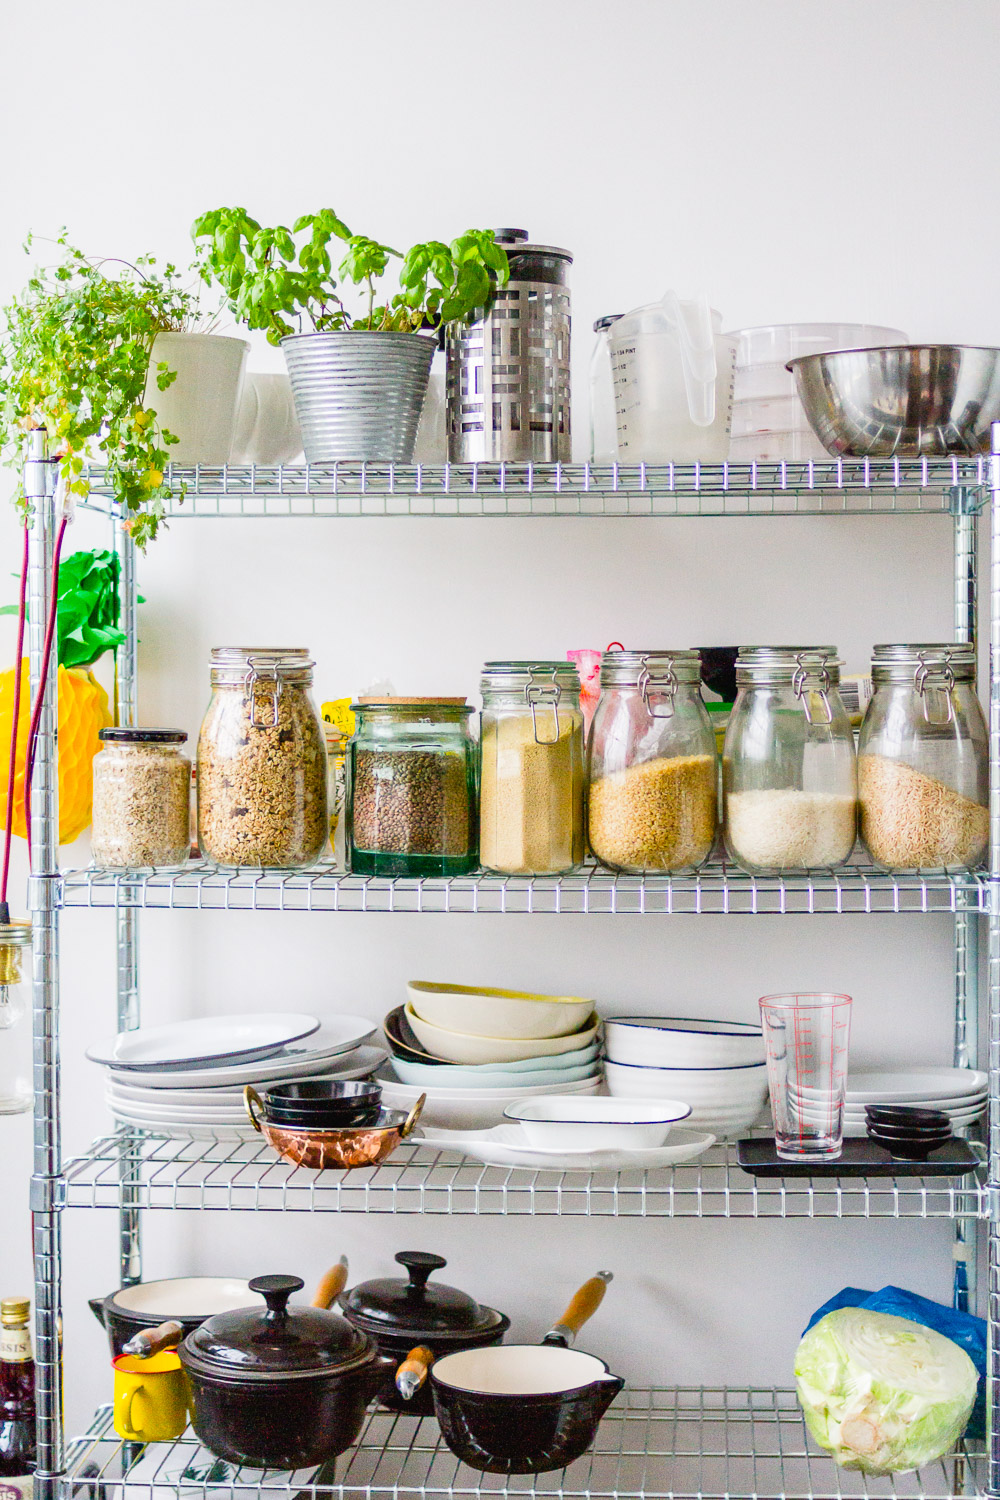 stainless steel shelving unit with glass kilner jars